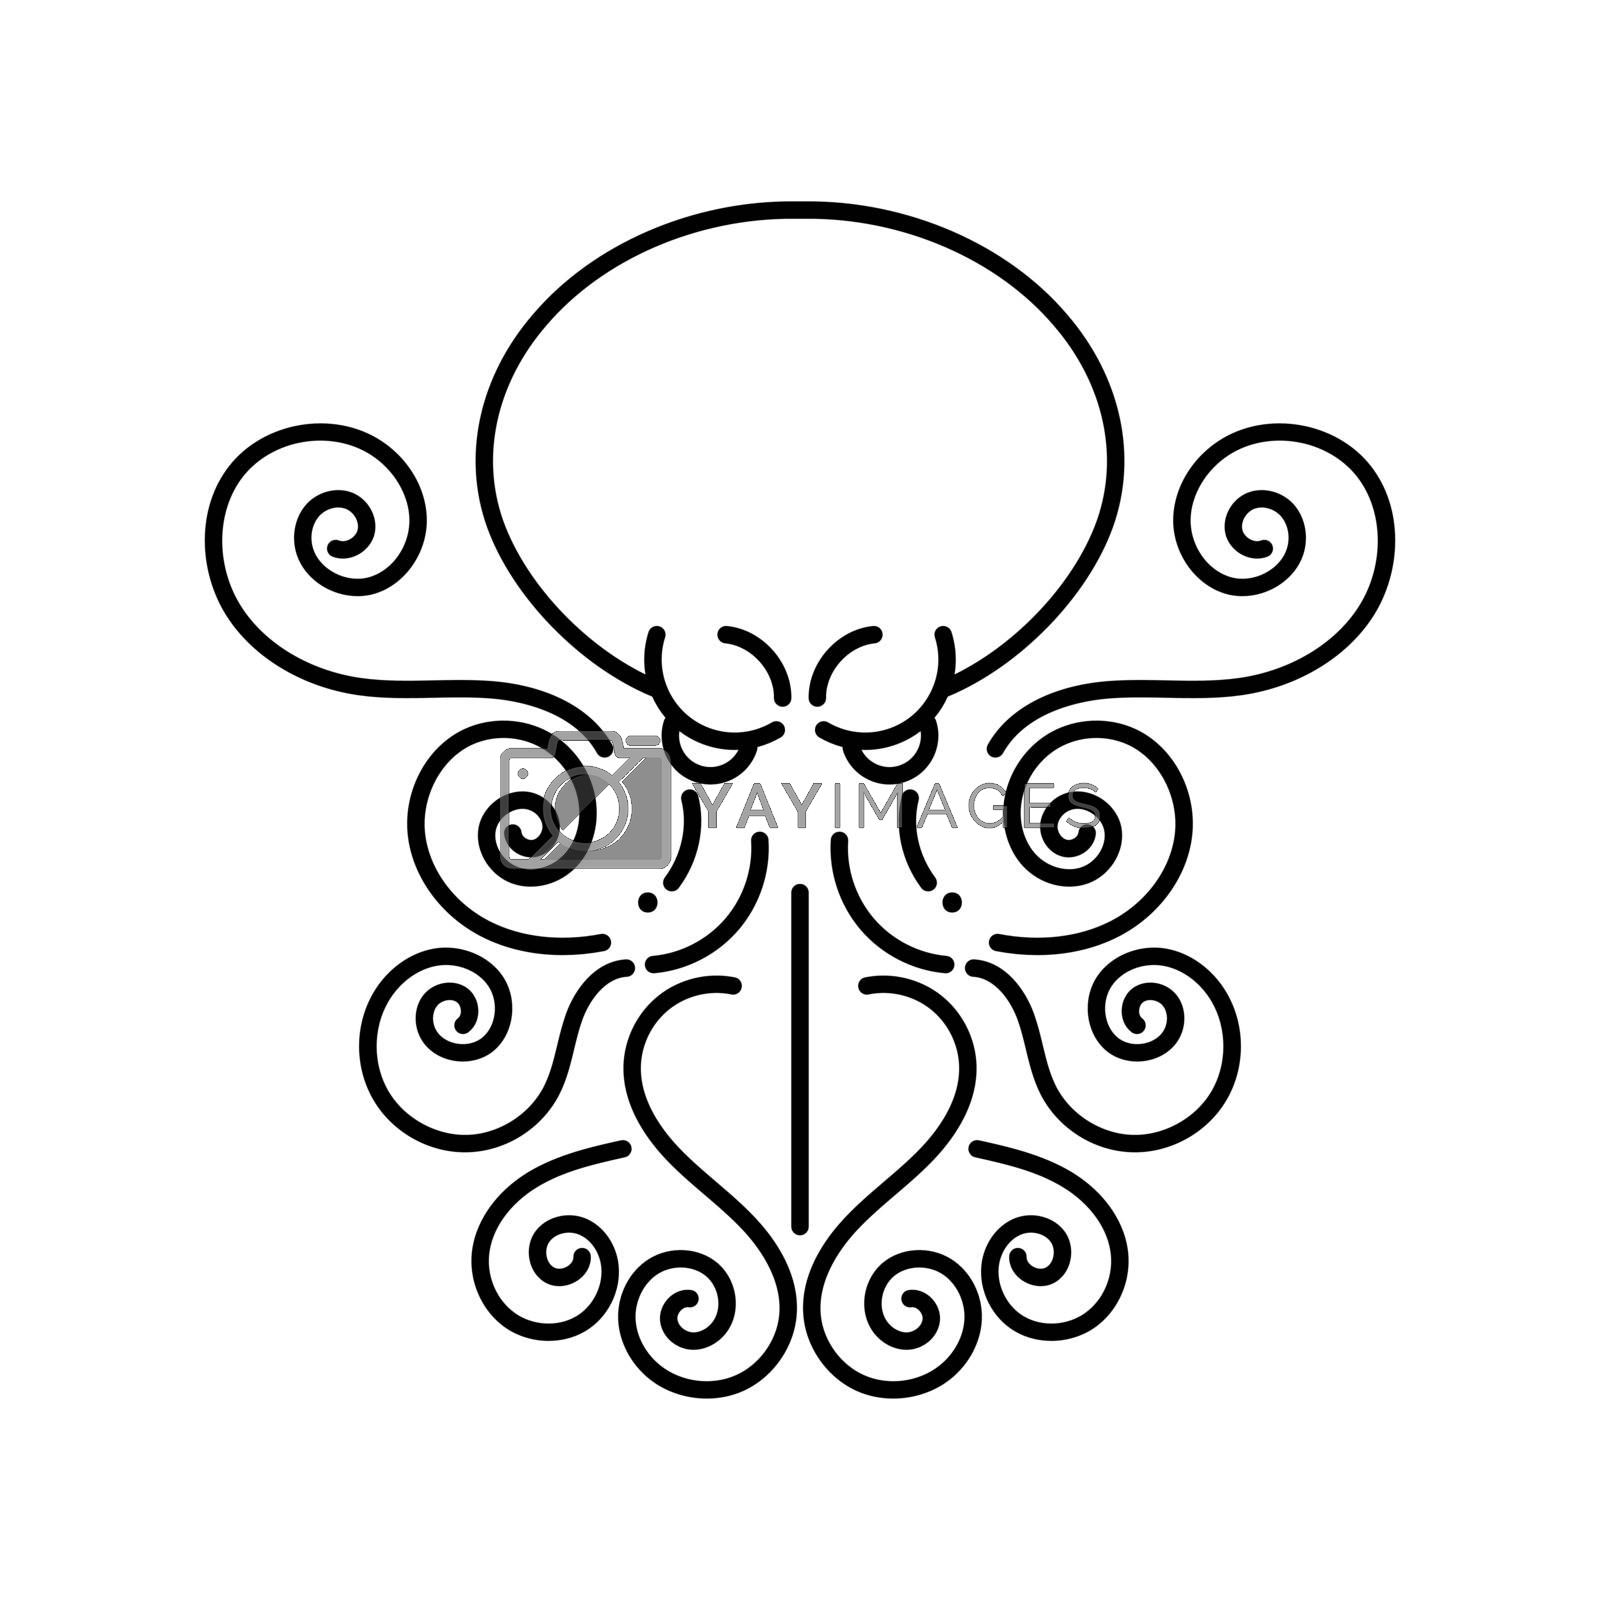 Octopus - Hand Drawn Sea Monster On White Background. Logo Design For Company.